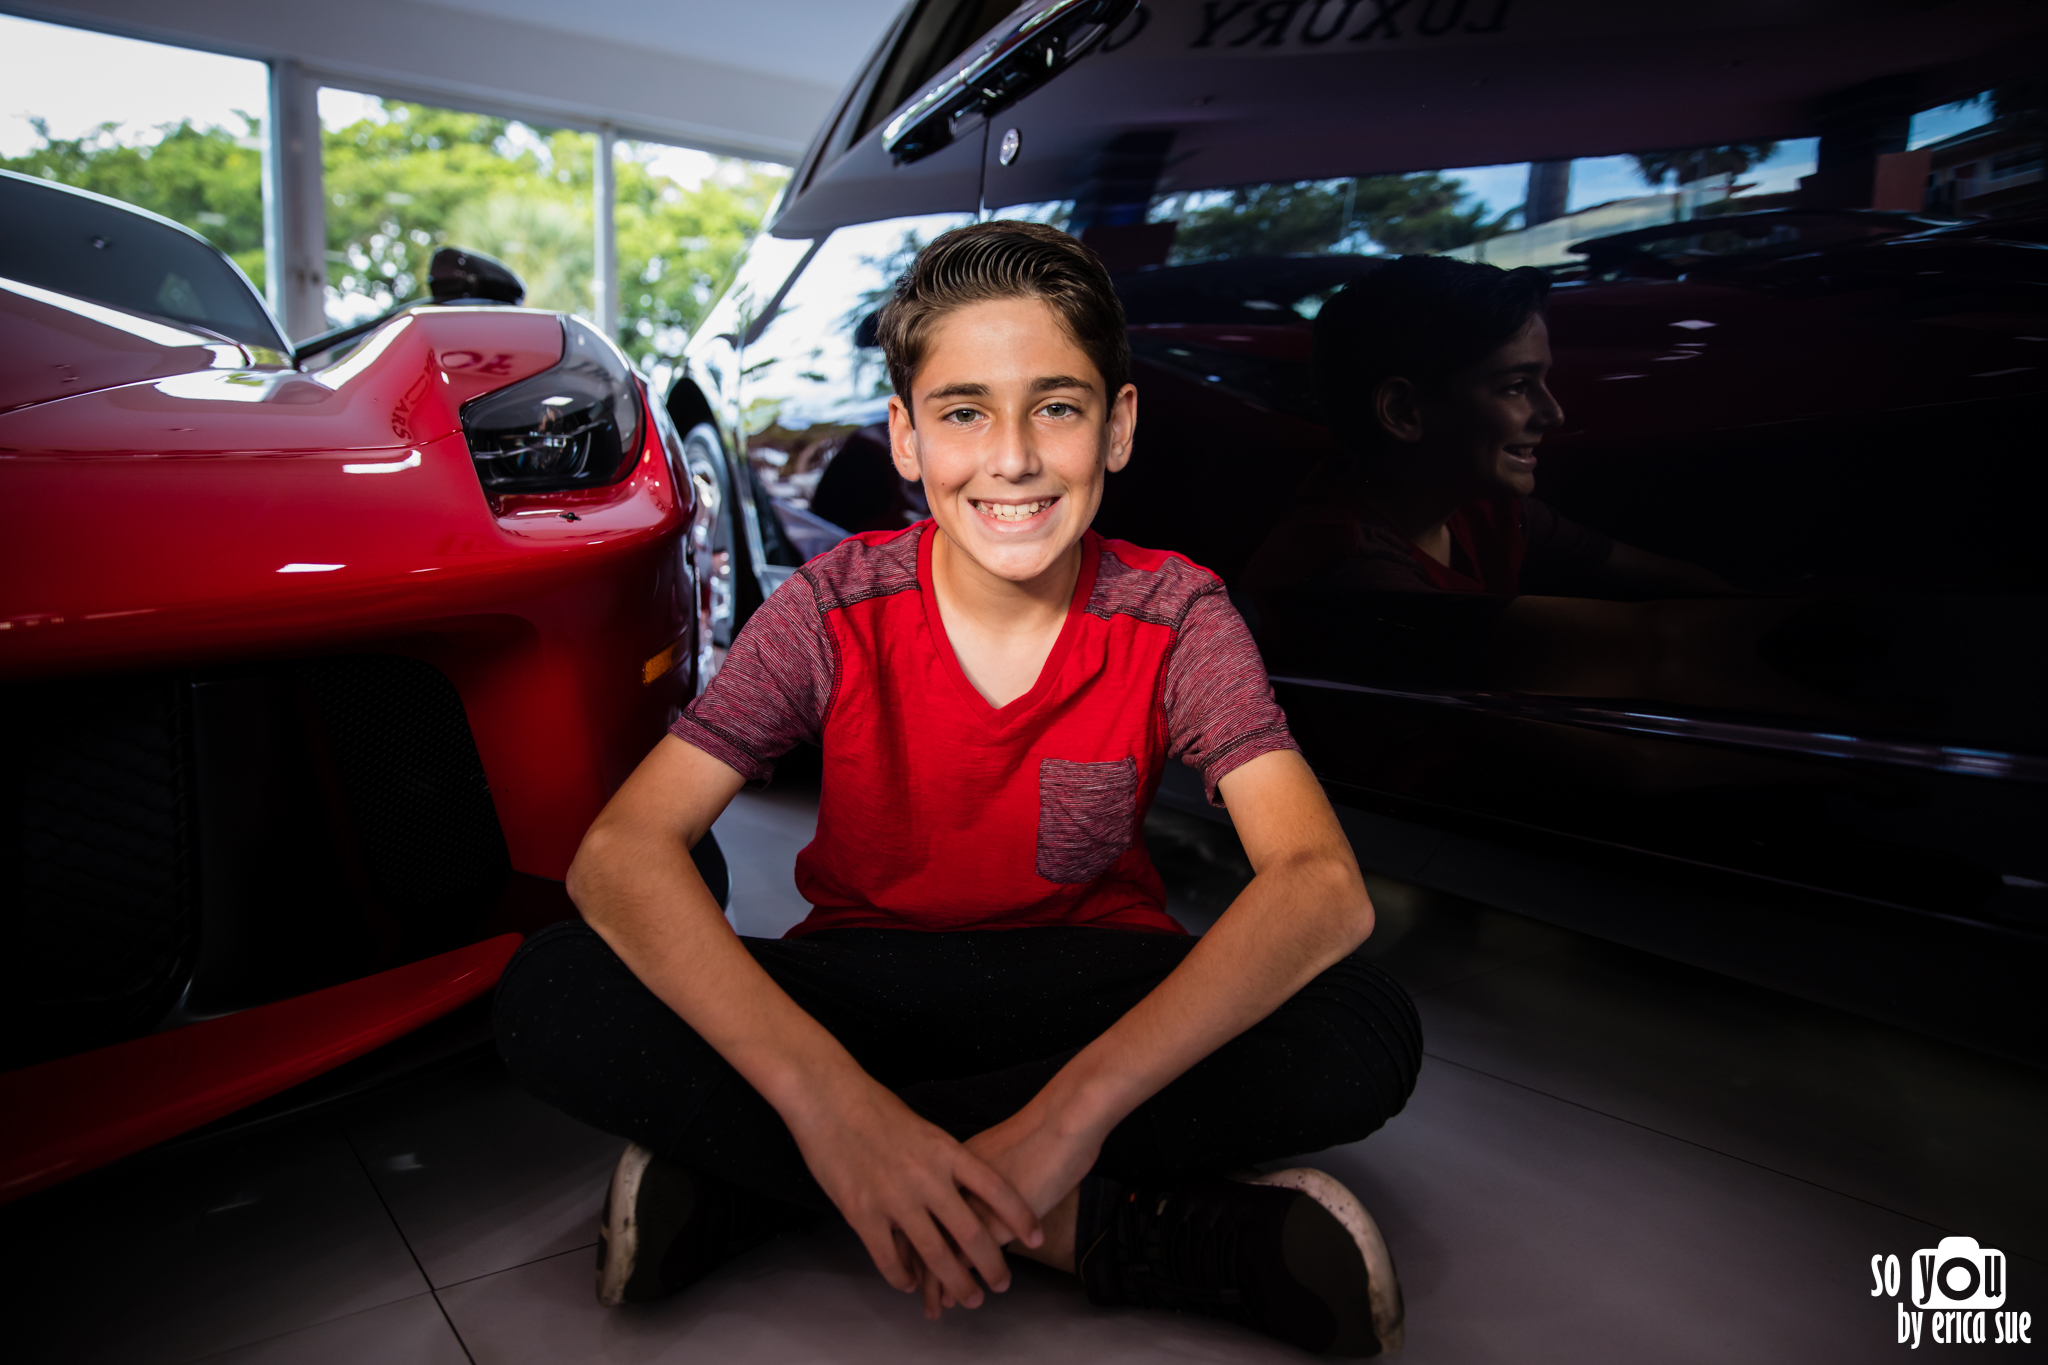 so-you-by-erica-sue-mitzvah-photographer-collection-luxury-car-ft-lauderdale-4909.jpg